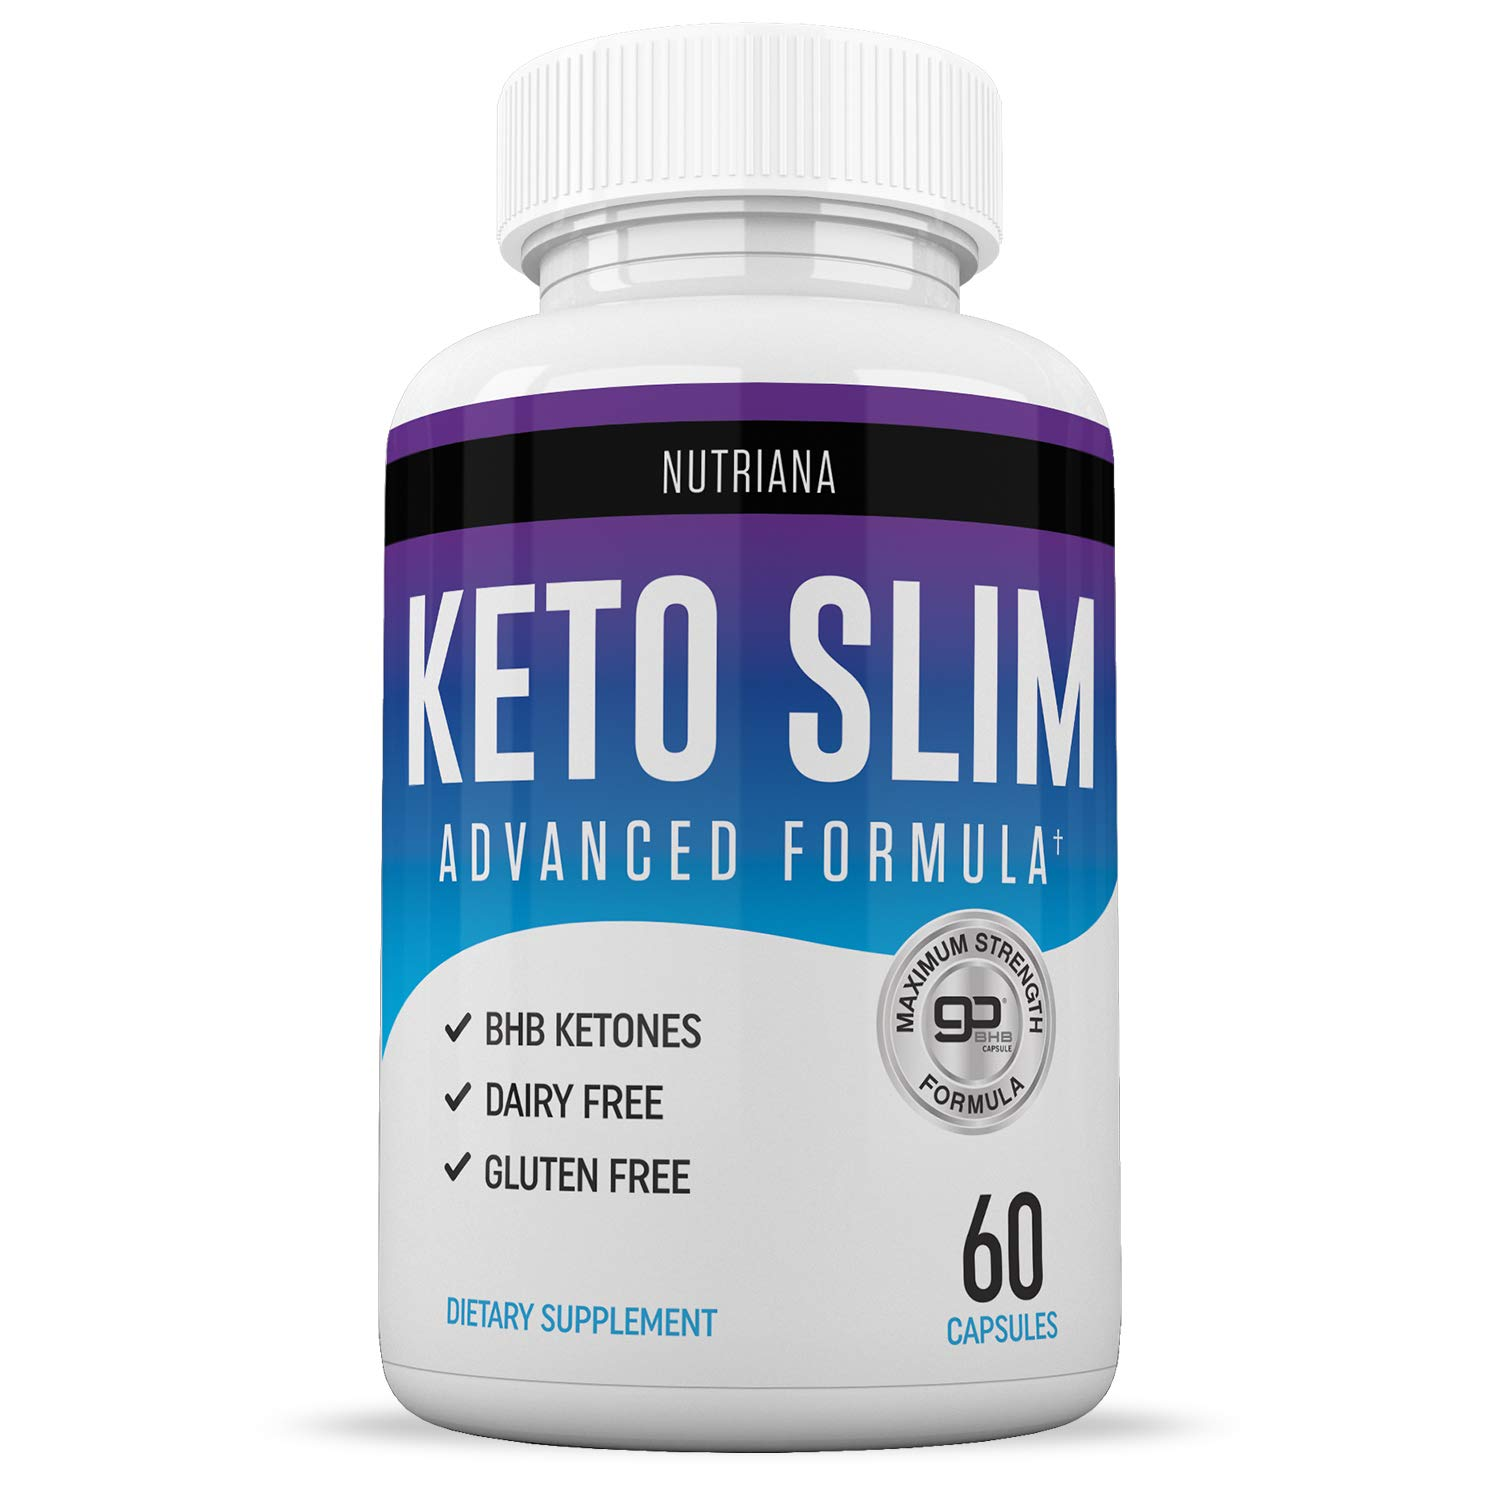 Best Keto Slim Diet Pills | Ketogenic Keto Pills for Women and Men | Ketosis Keto Supplement with BHB Salts for Keto Diet | Exogenous Ketones | Keto Pills 60 Capsules by Nutriana